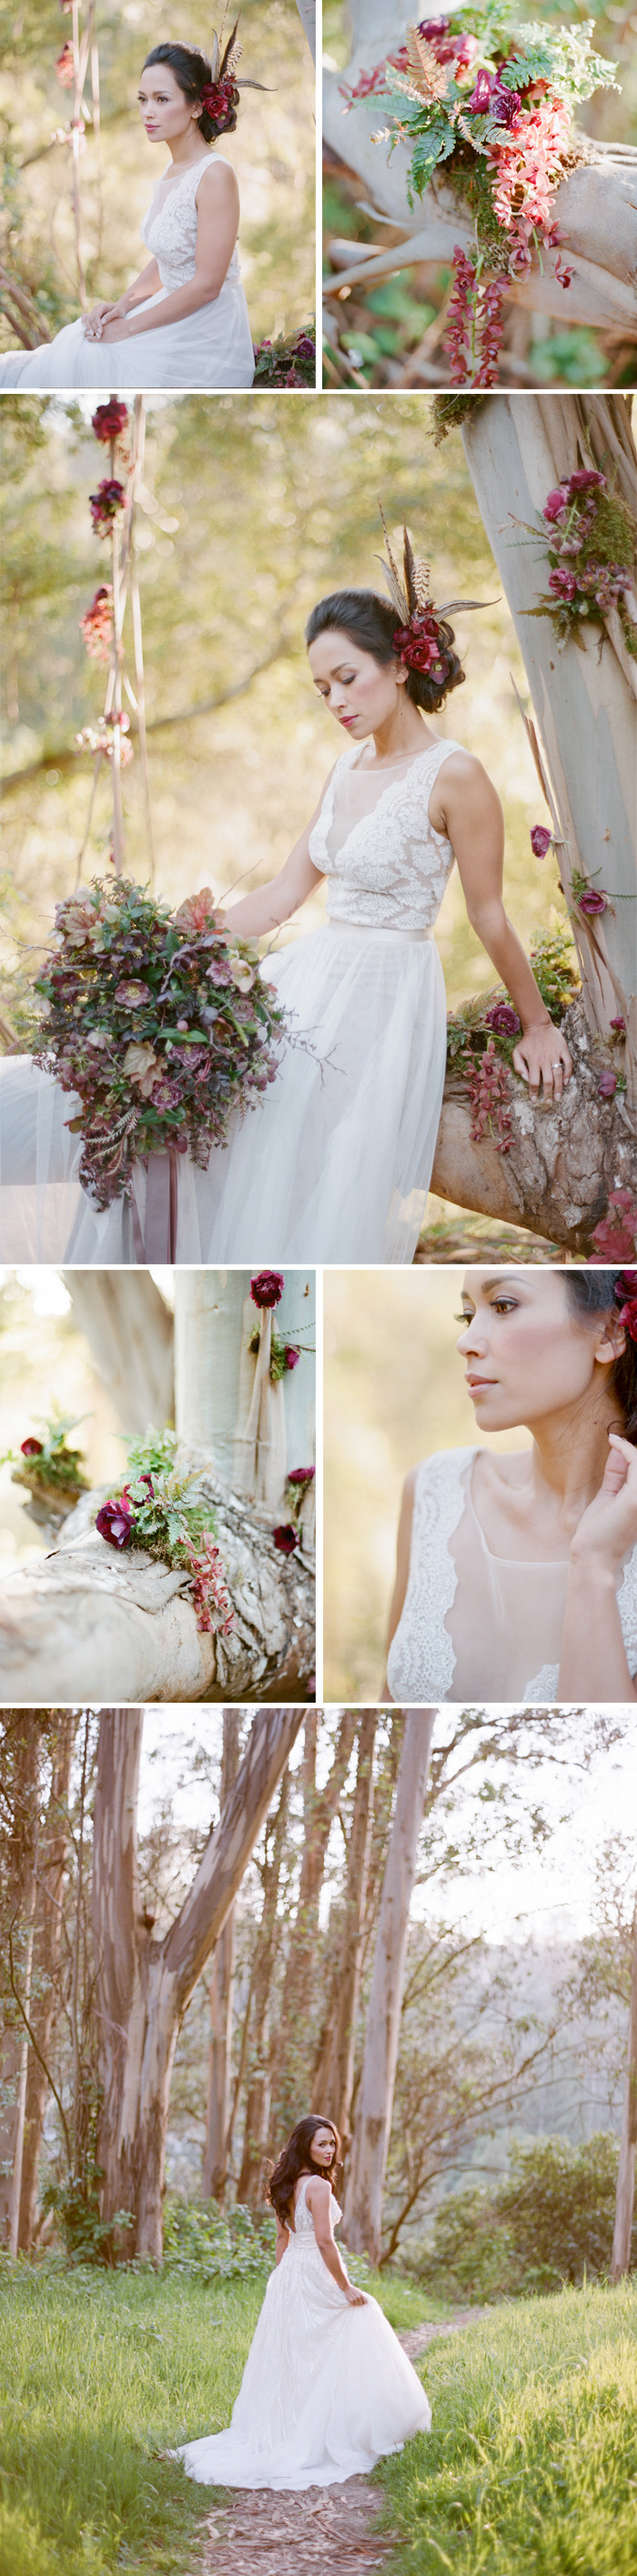 SylvieGil- Film-Photography-wedding gown- Napa-Sonoma-California- destination-natural bouquet-hairdressing- makeup-florals